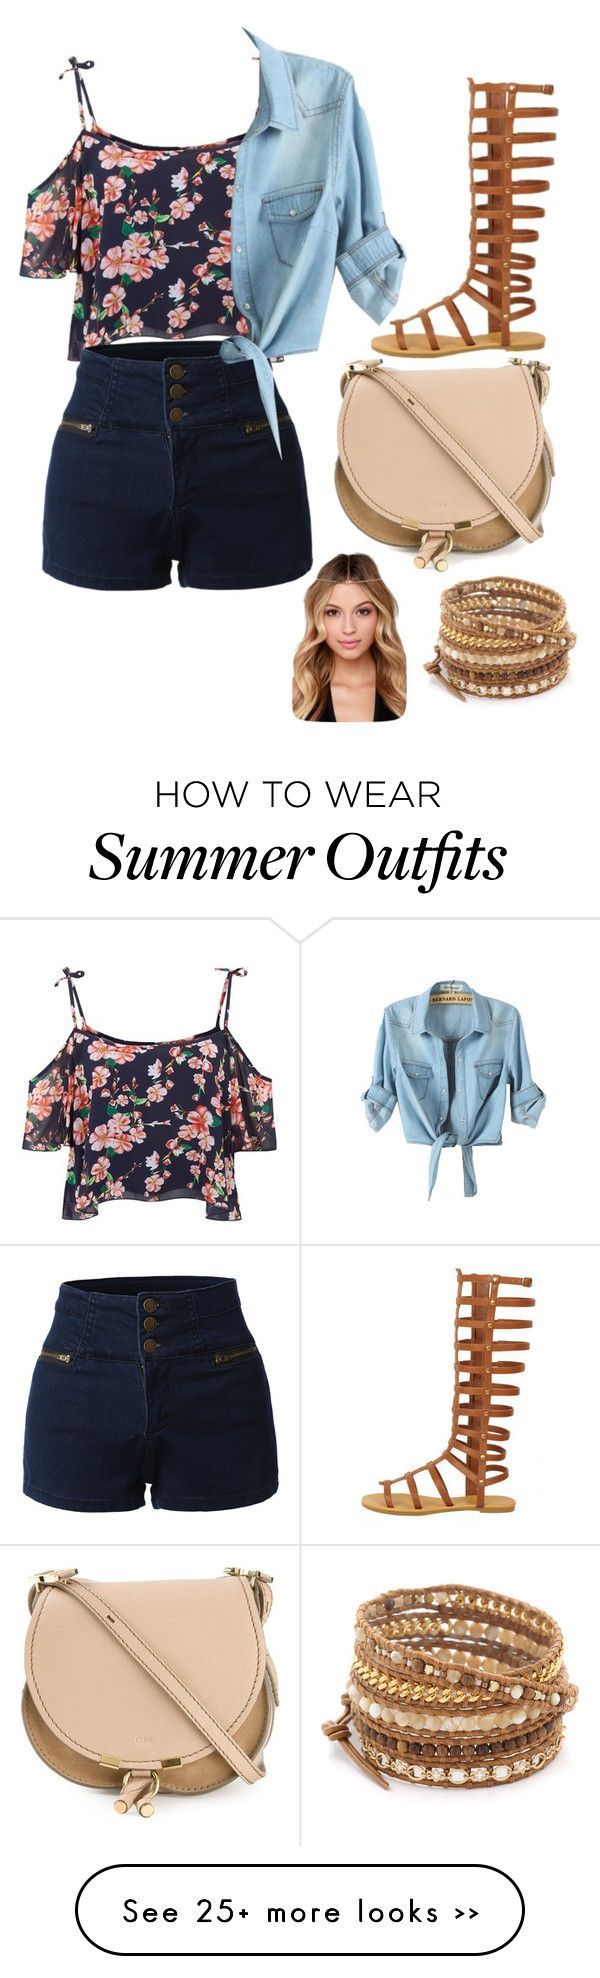 Read More About Summer Outfits Sets